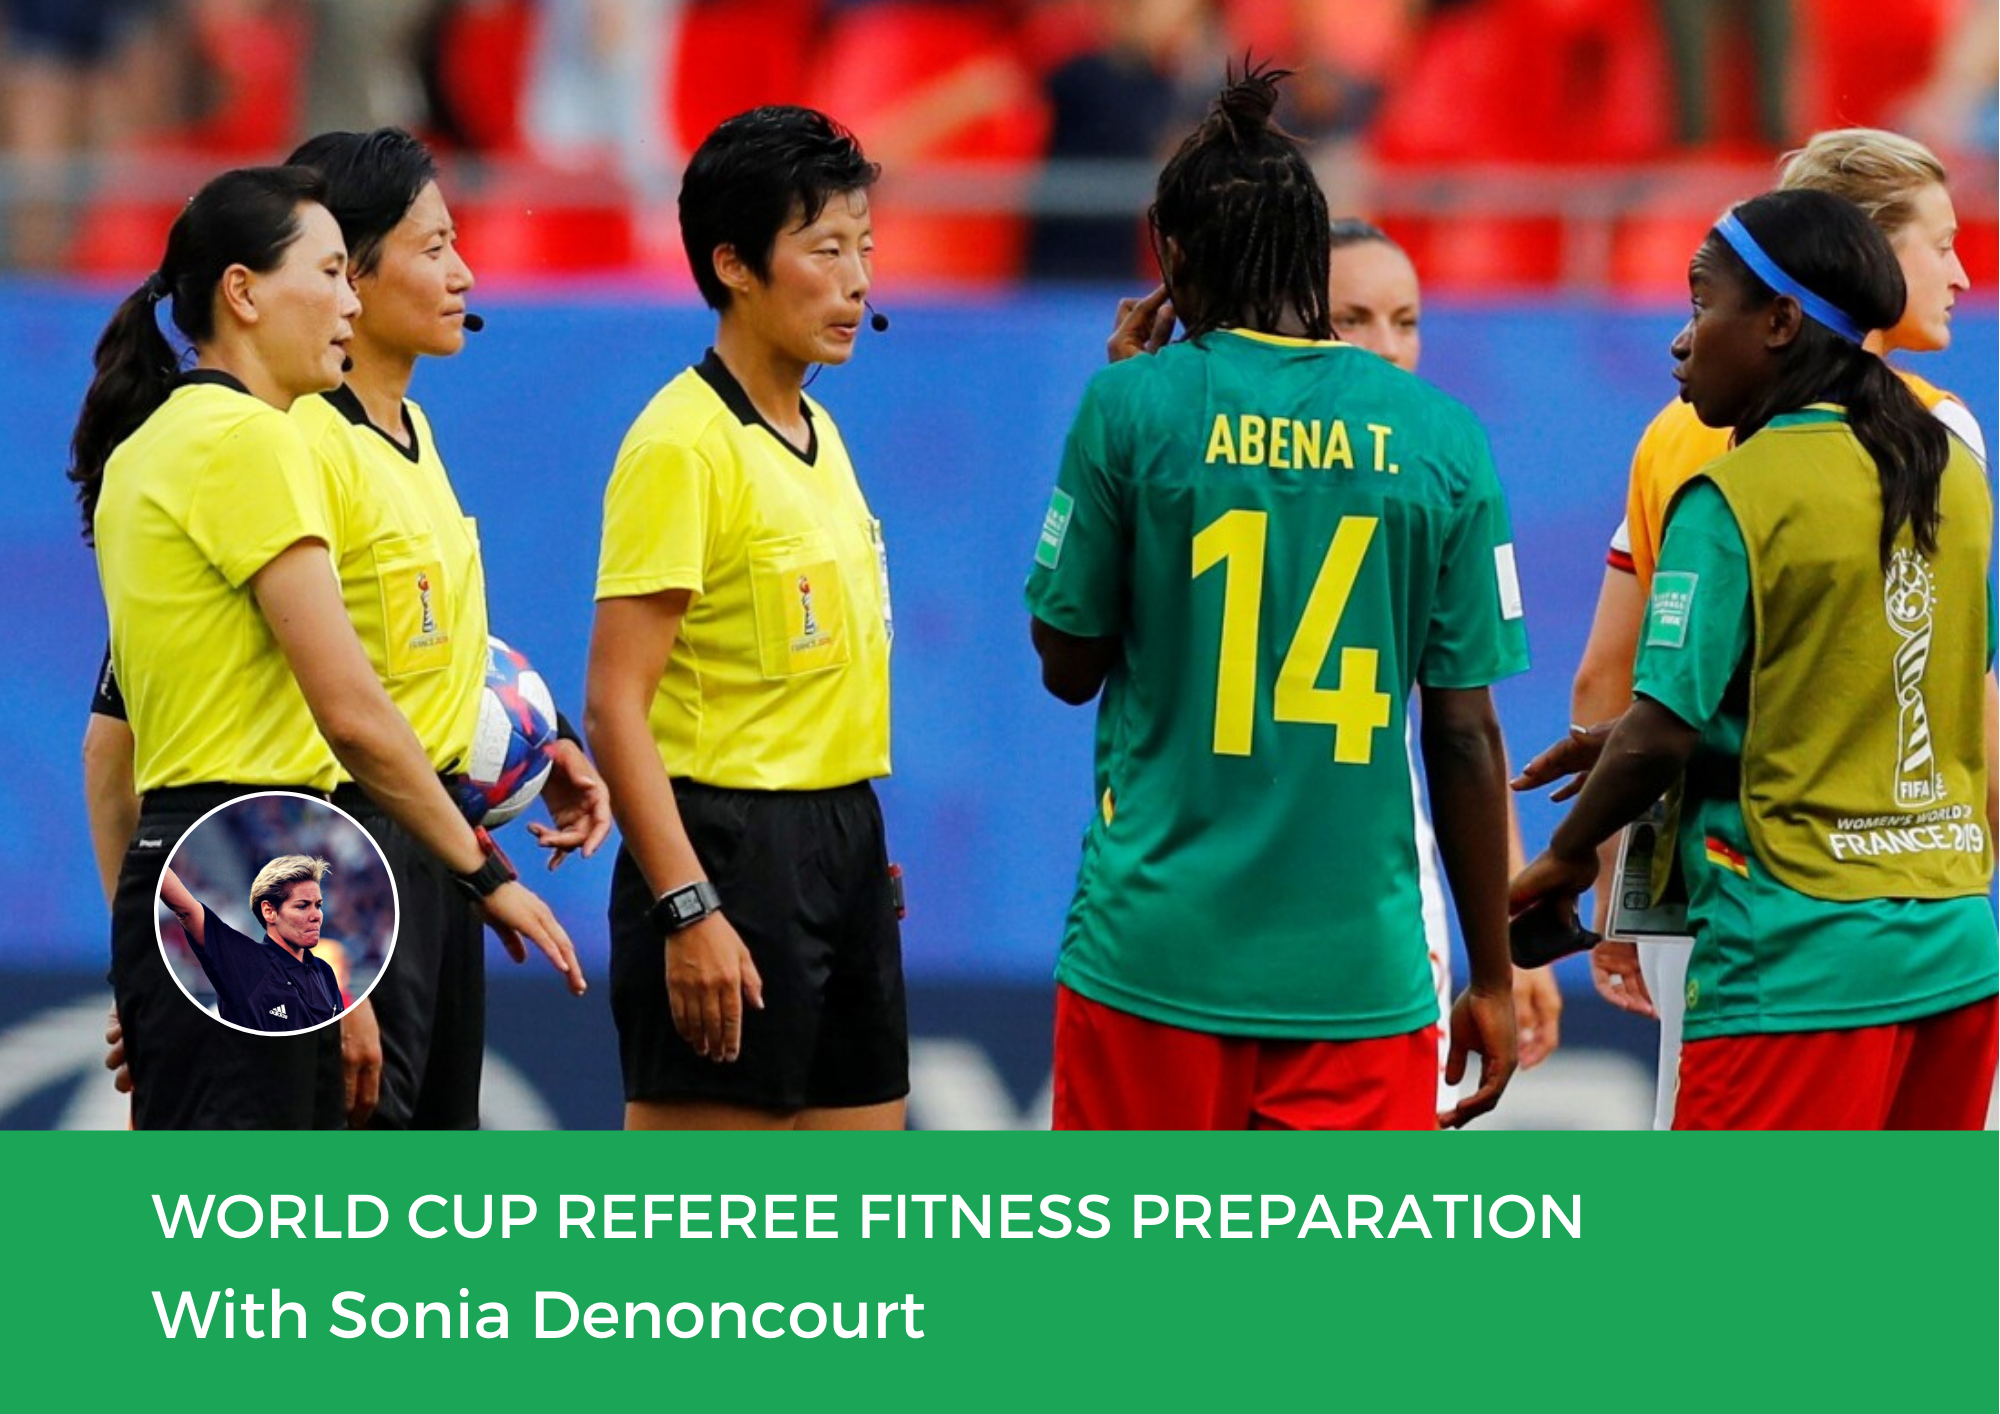 World Cup Referee Fitness Preparation